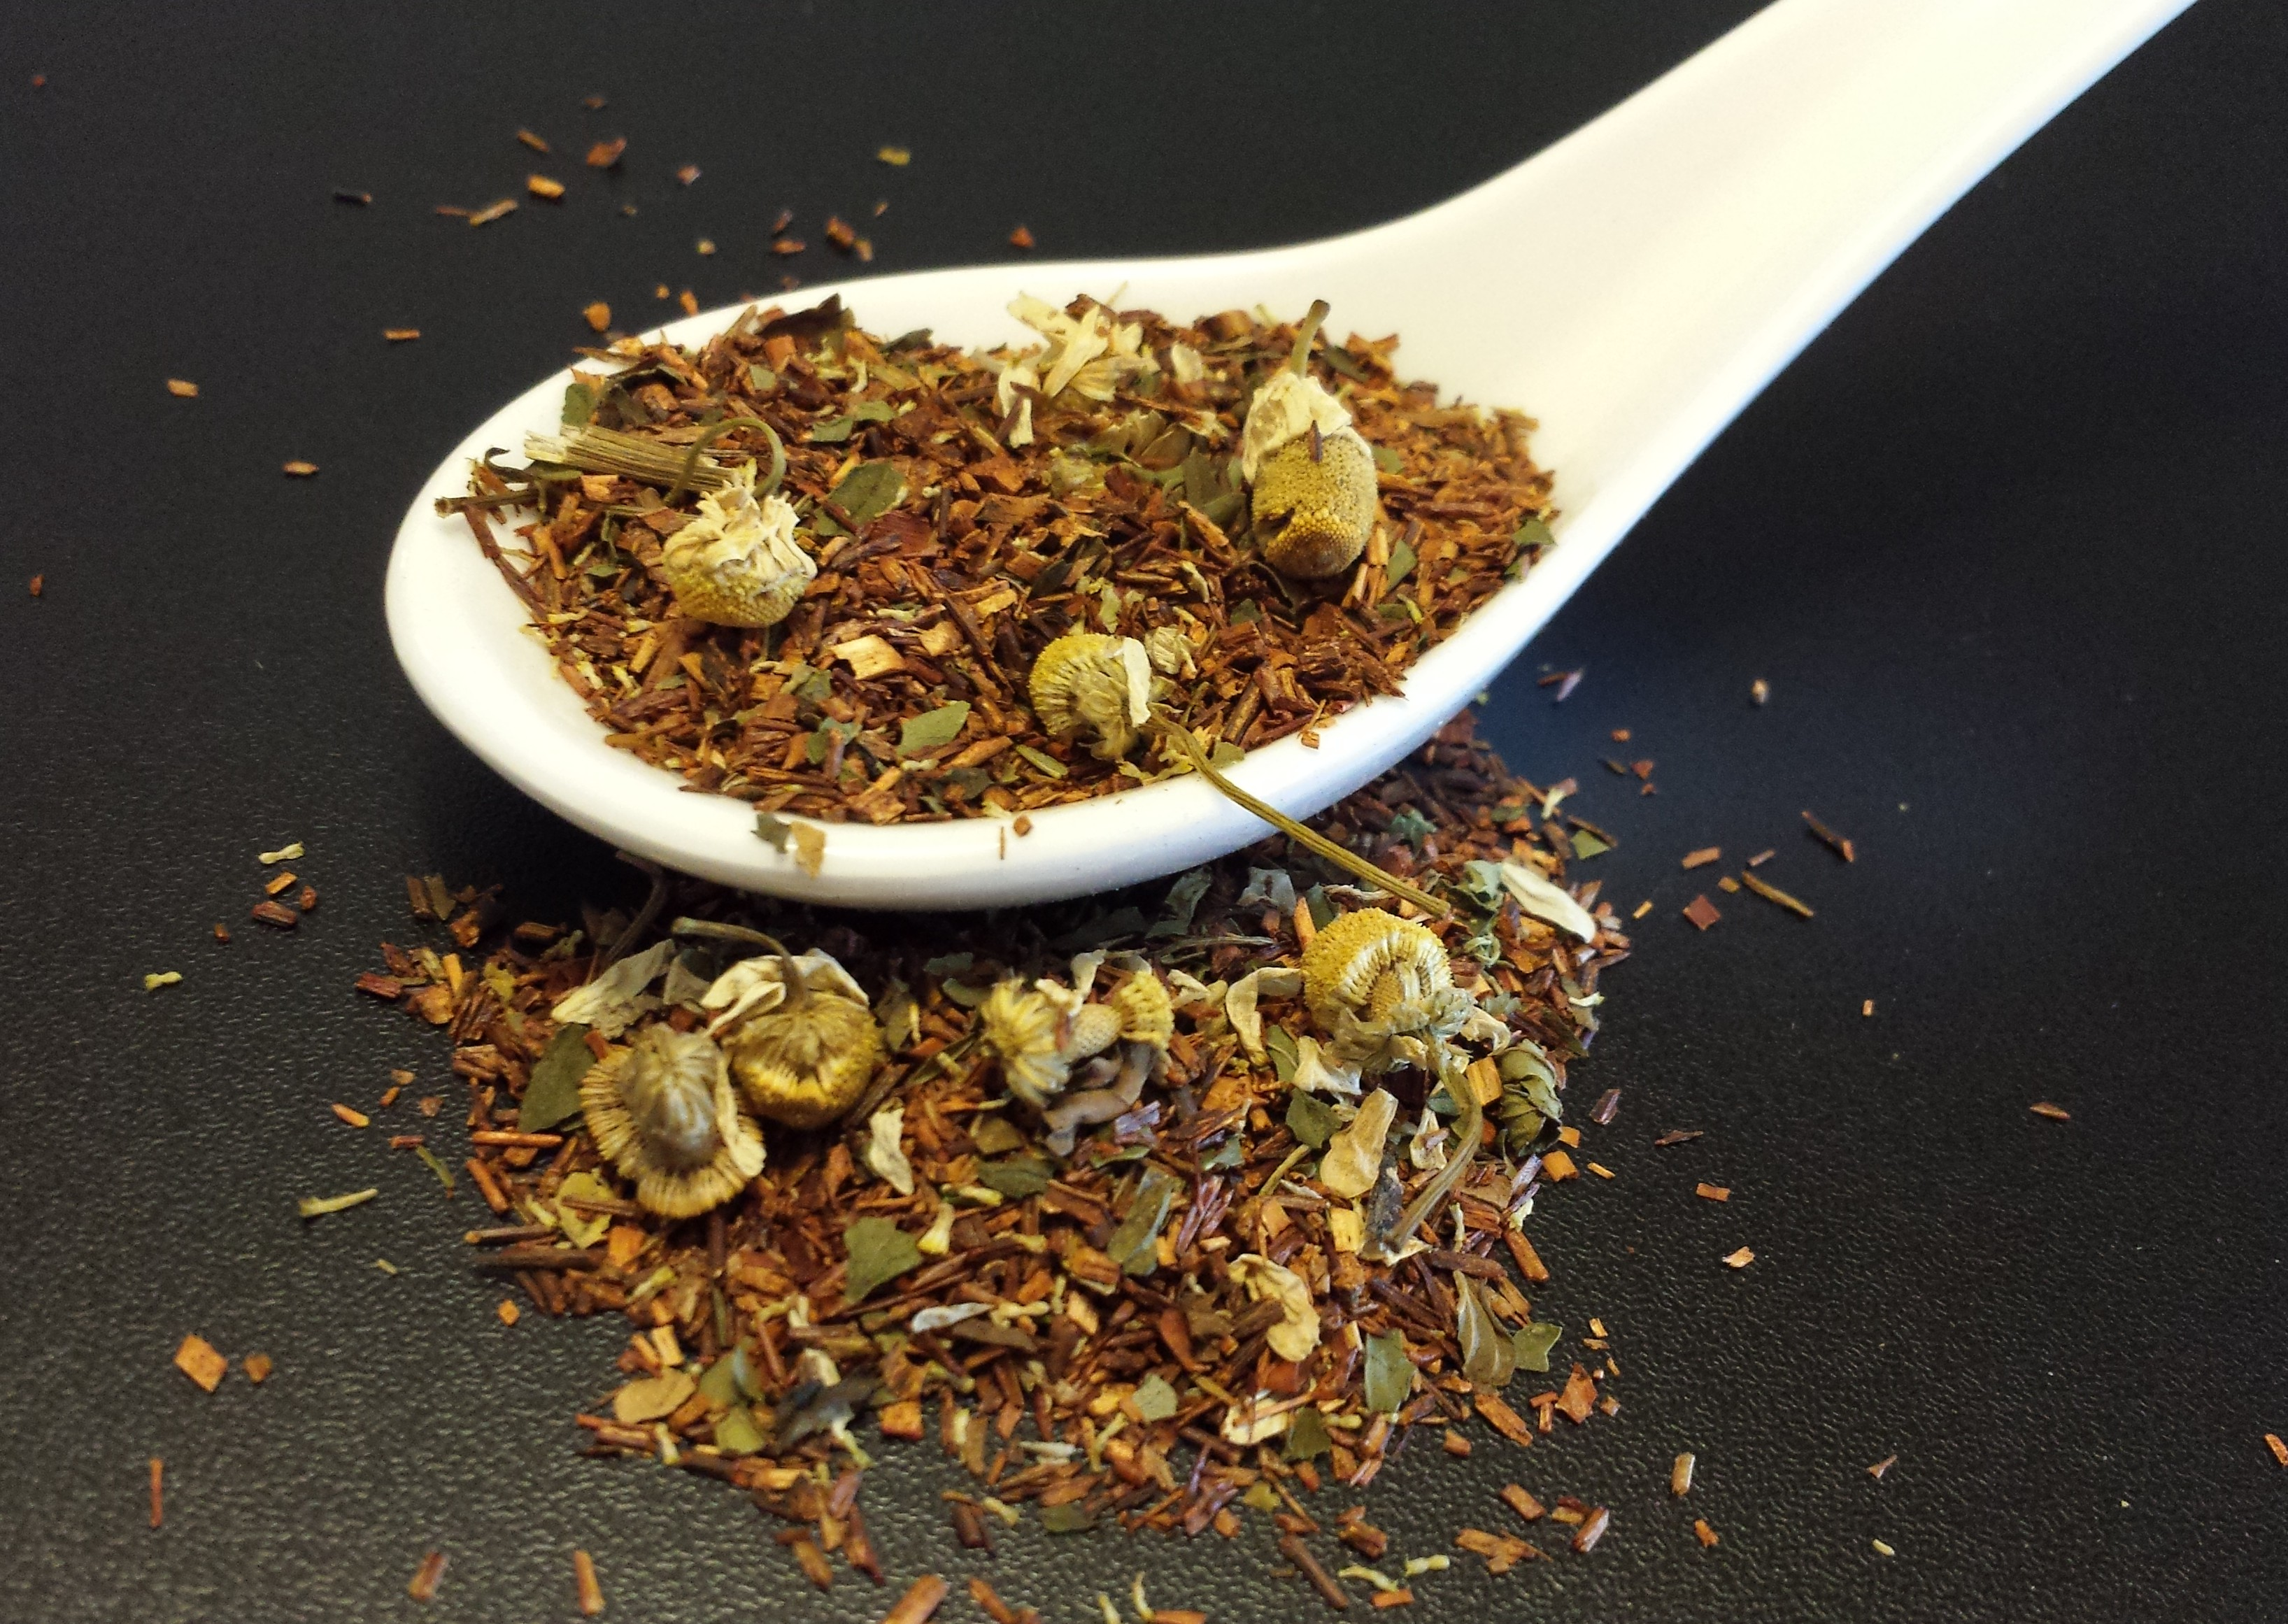 Vanilla Mint Rooibos, vanilla, mint, chamomile, rooibos, red tea, South Africa, tisane, caffeine free